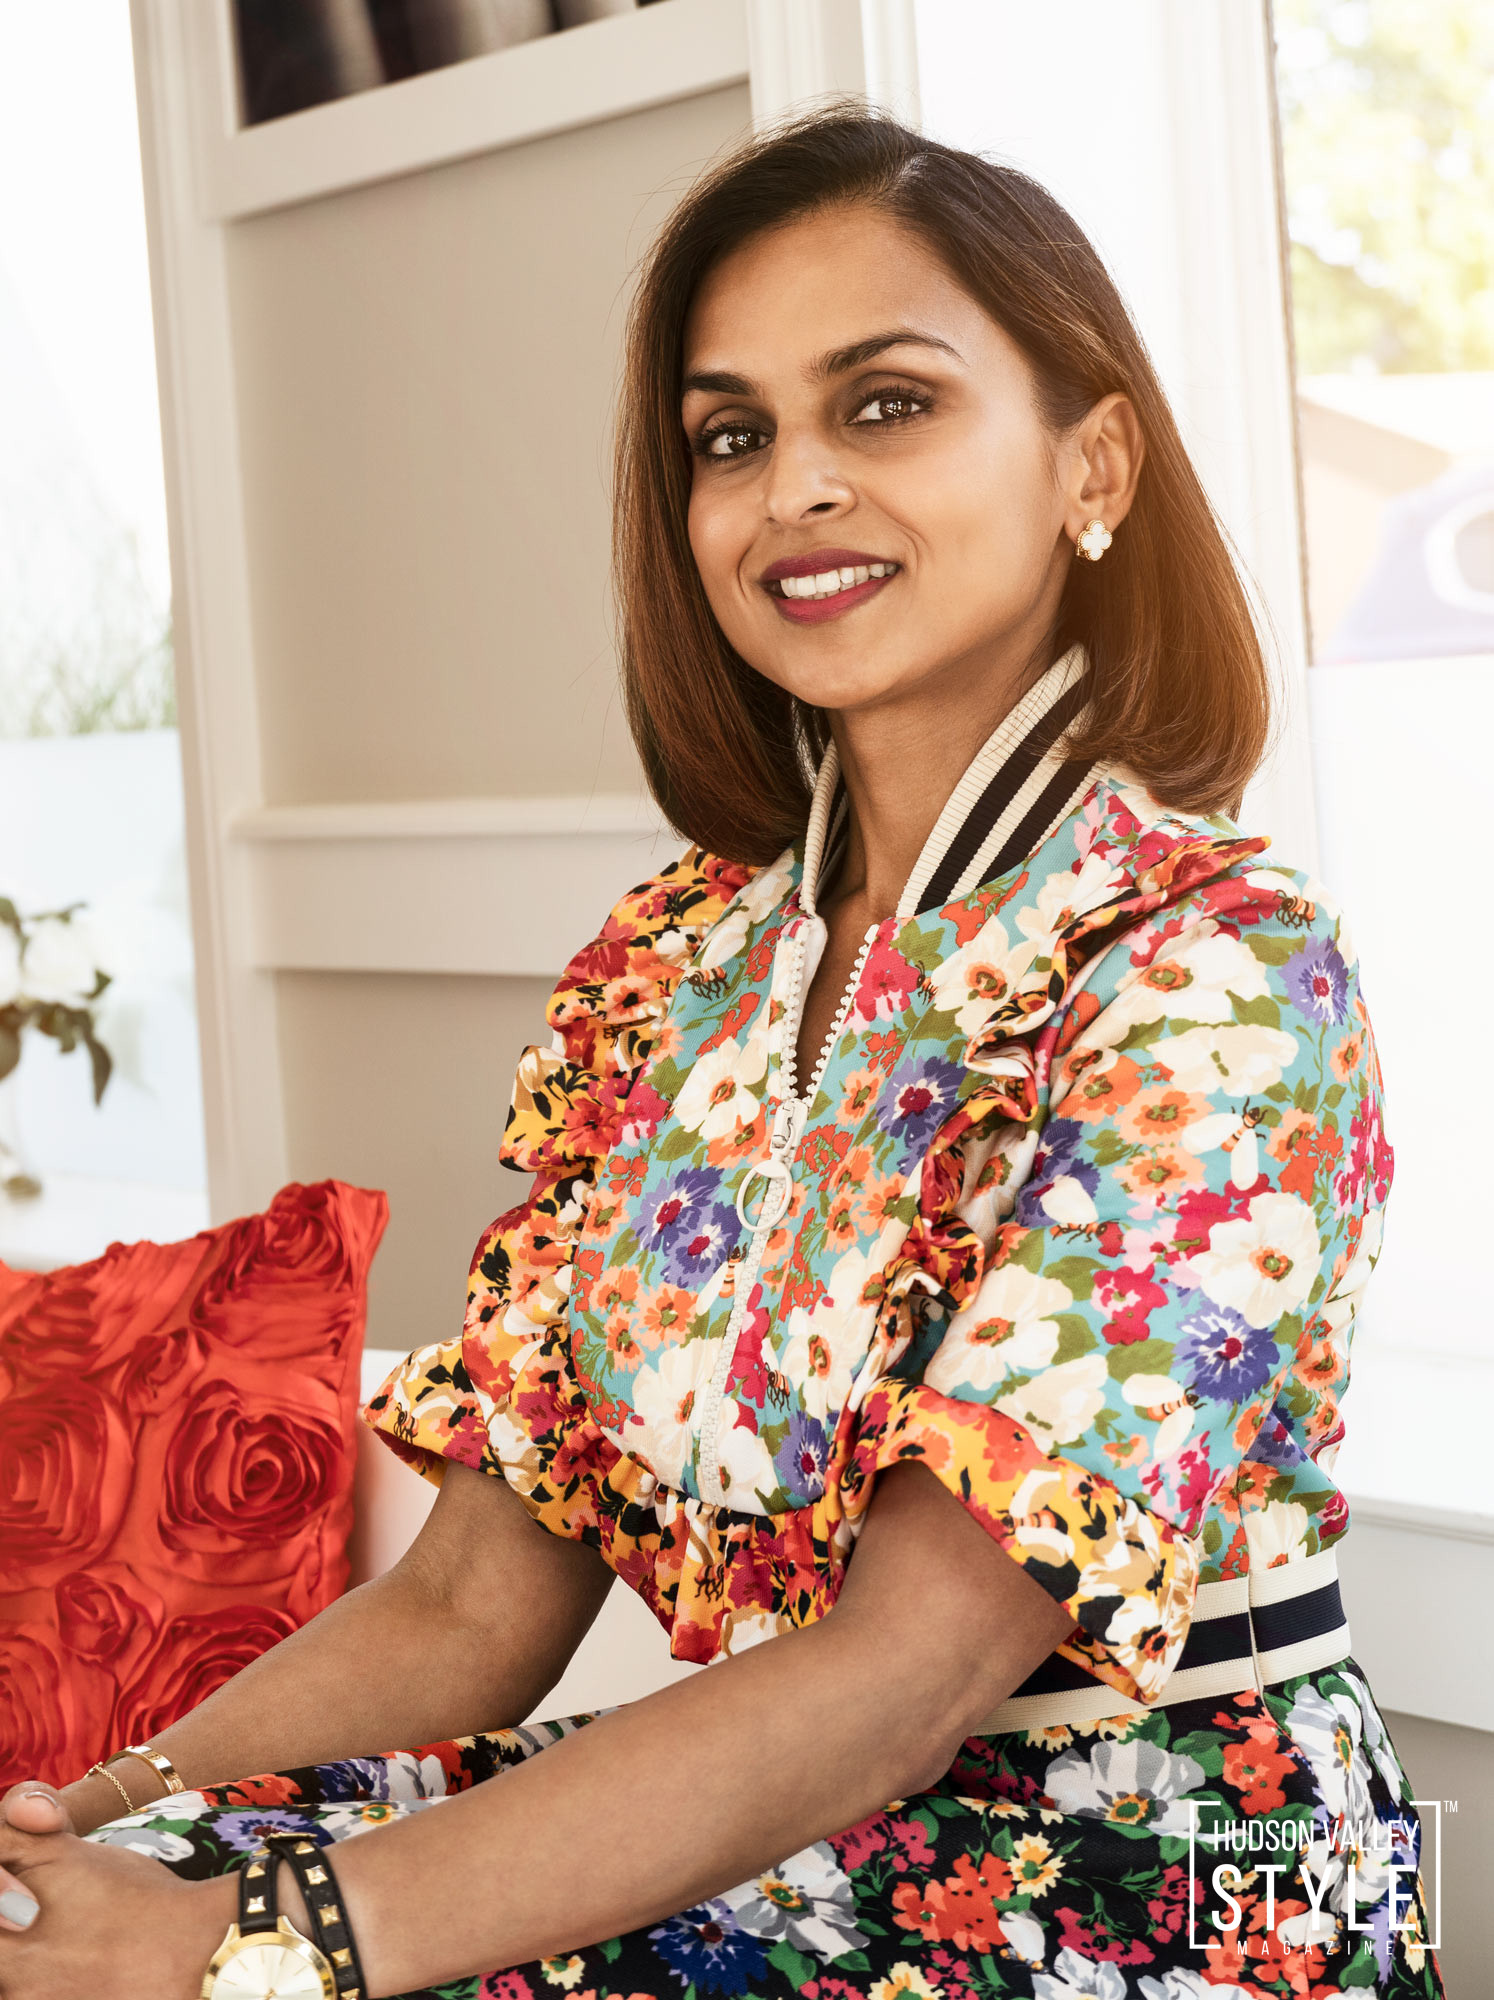 Exclusive Interview with Dr. Zainab Mogul-Ashraf (Dr. Z) of Hebe Medical Spa Interview and Photography by Maxwell Alexander